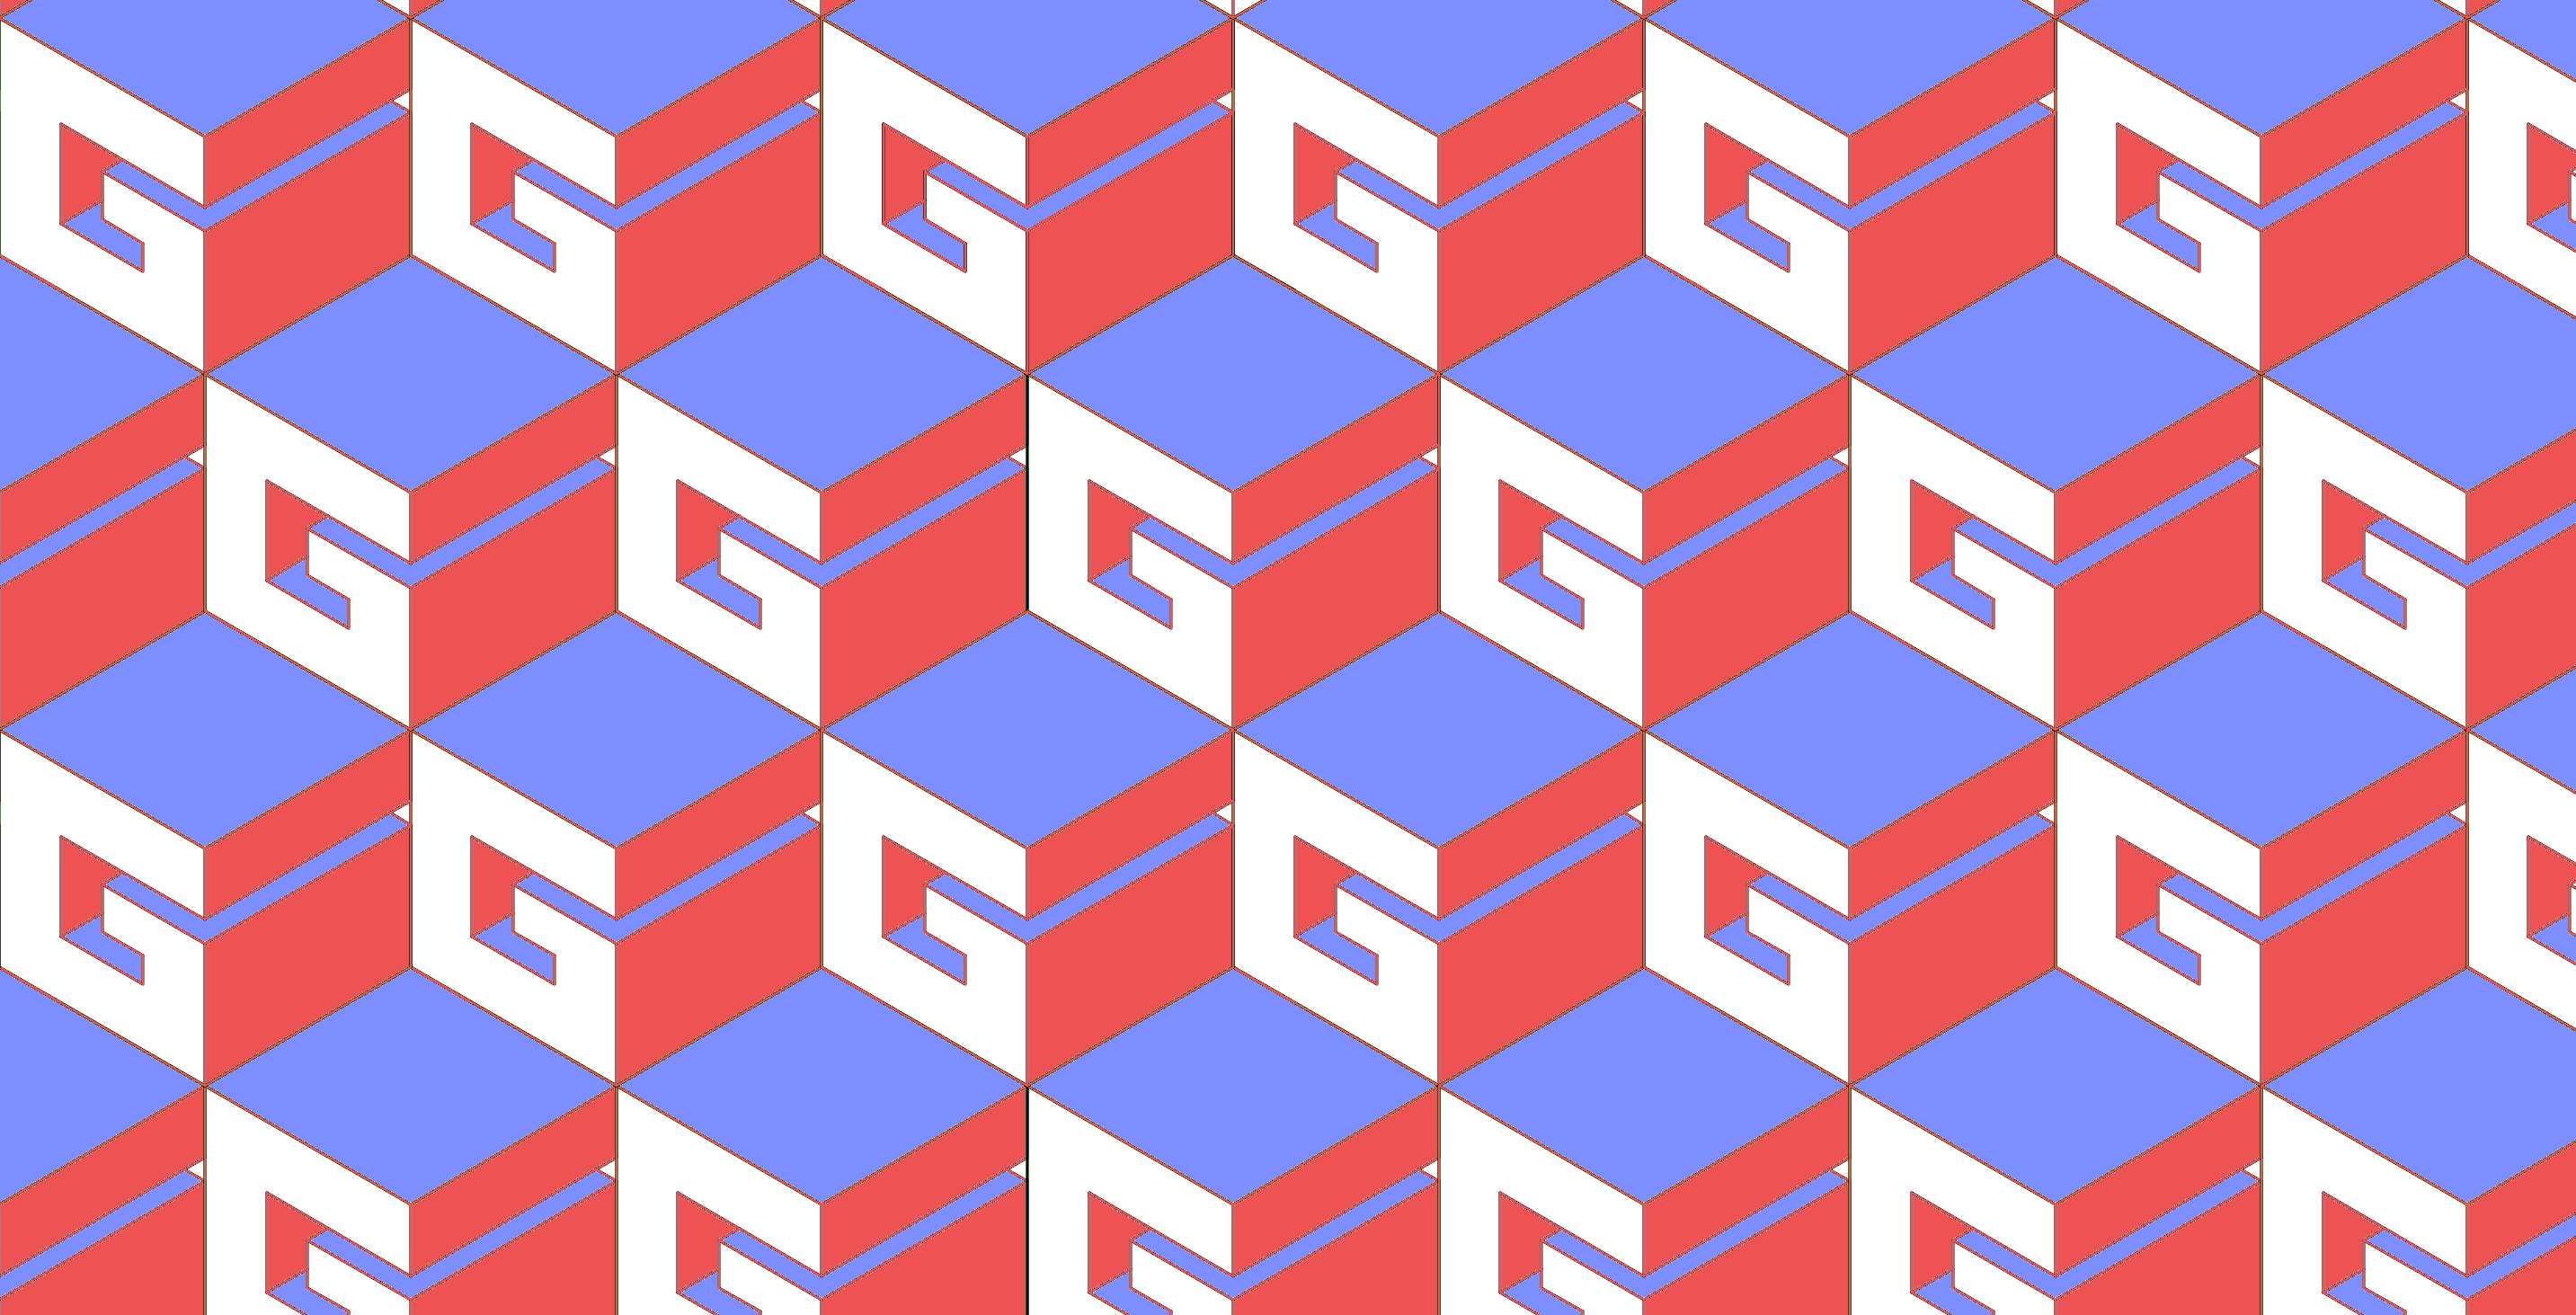 Gonzo Industrial logo repeating in a geometric print